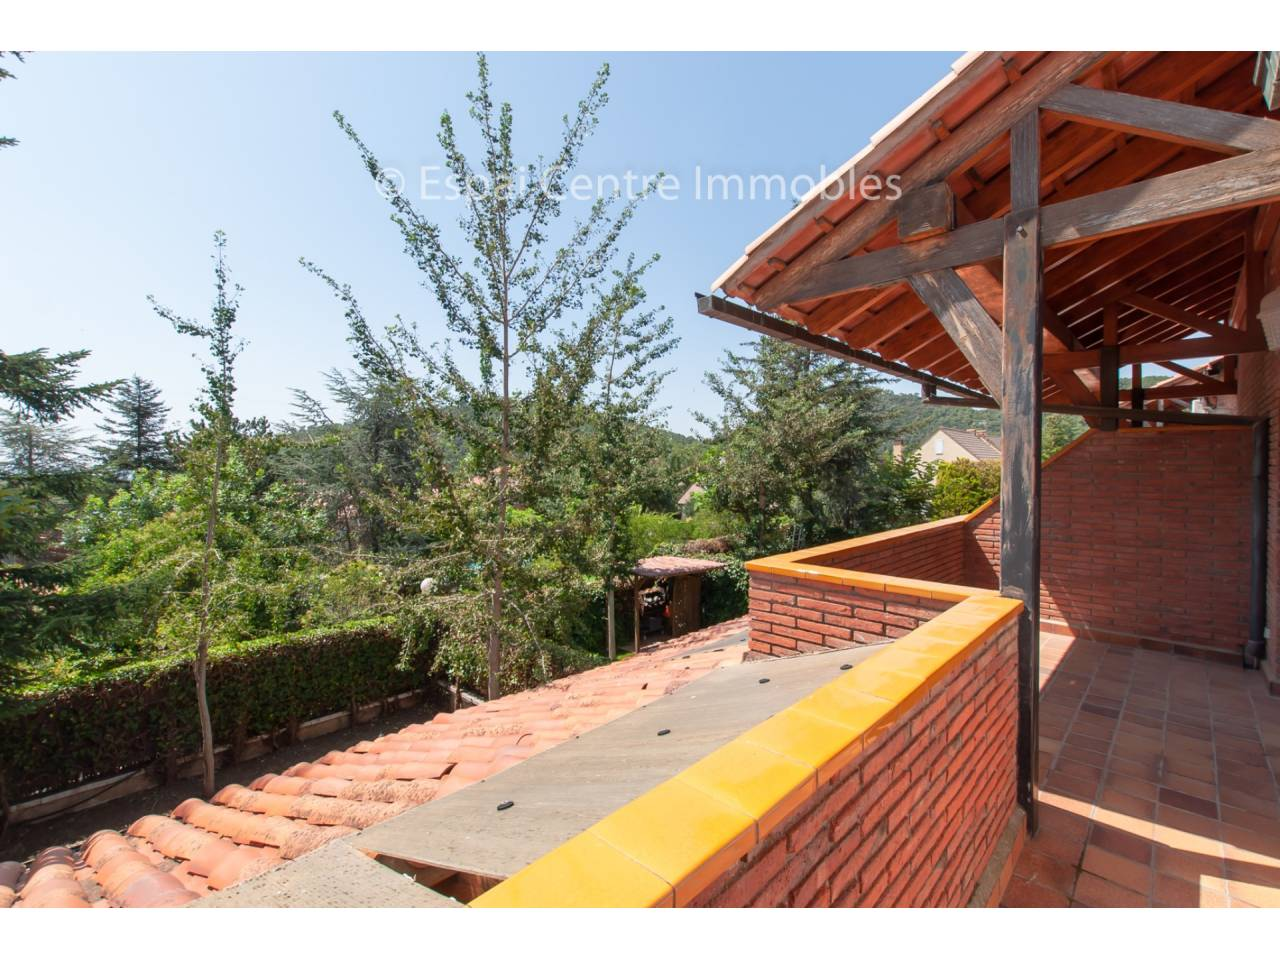 Casa pareada en venta en Matadepera